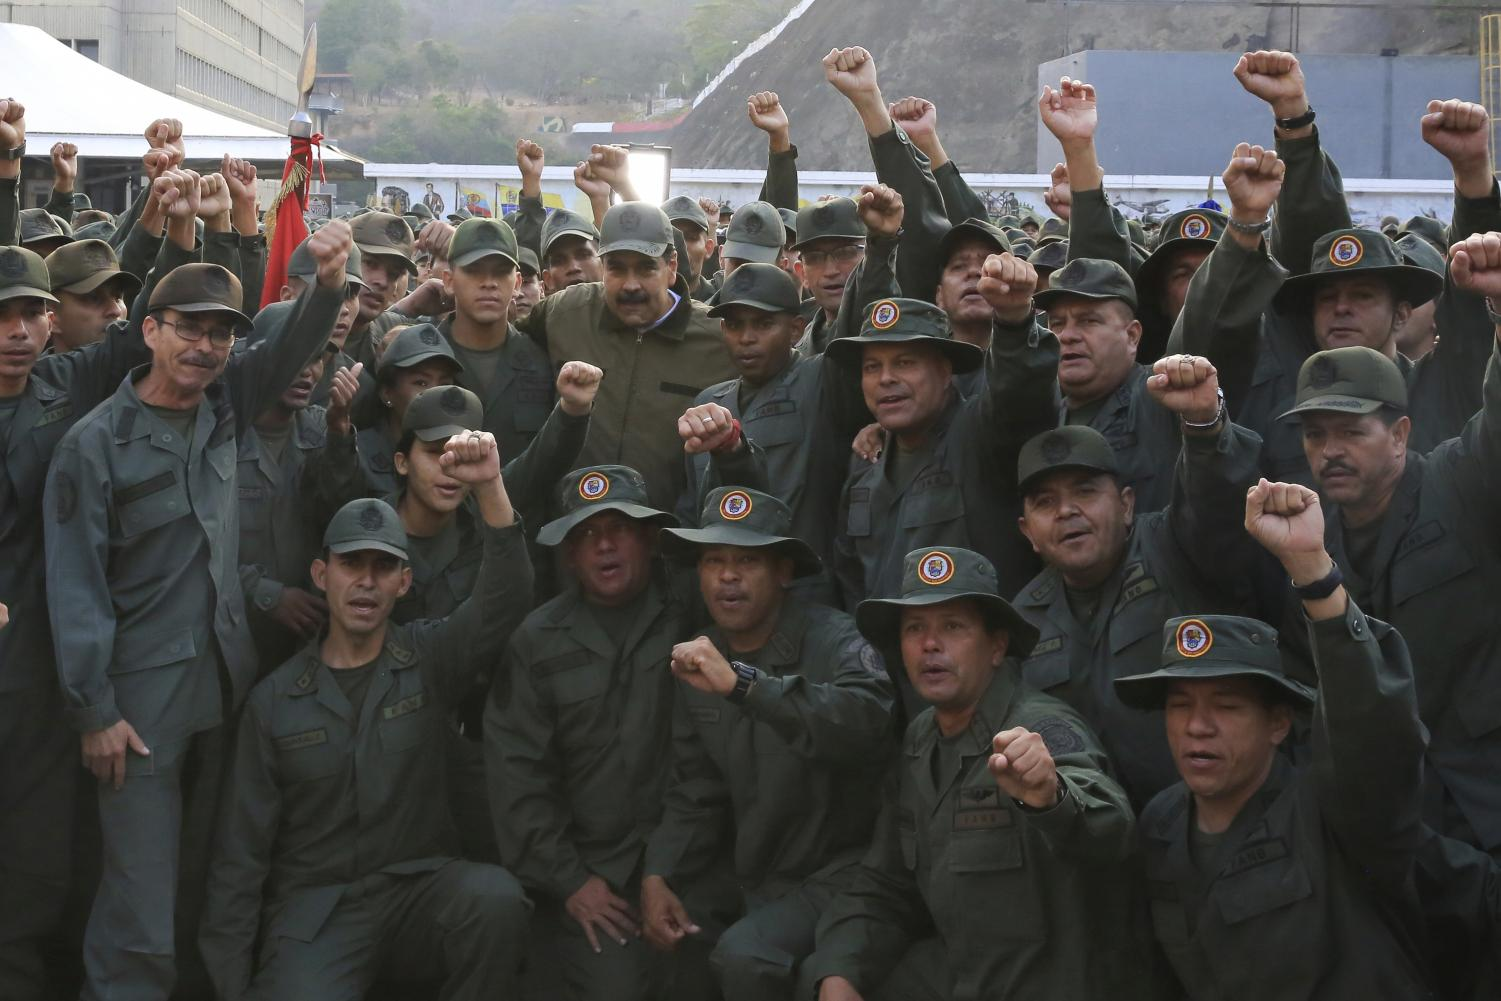 In this photo released by Miraflores Press Office, Venezuela's President Nicolas Maduro, center left, poses for a photo with troops at Fort Tiuna, in Caracas, Venezuela, Thursday, May 2, 2019. Flanked by commanders, Maduro said Thursday that the military must be prepared to combat